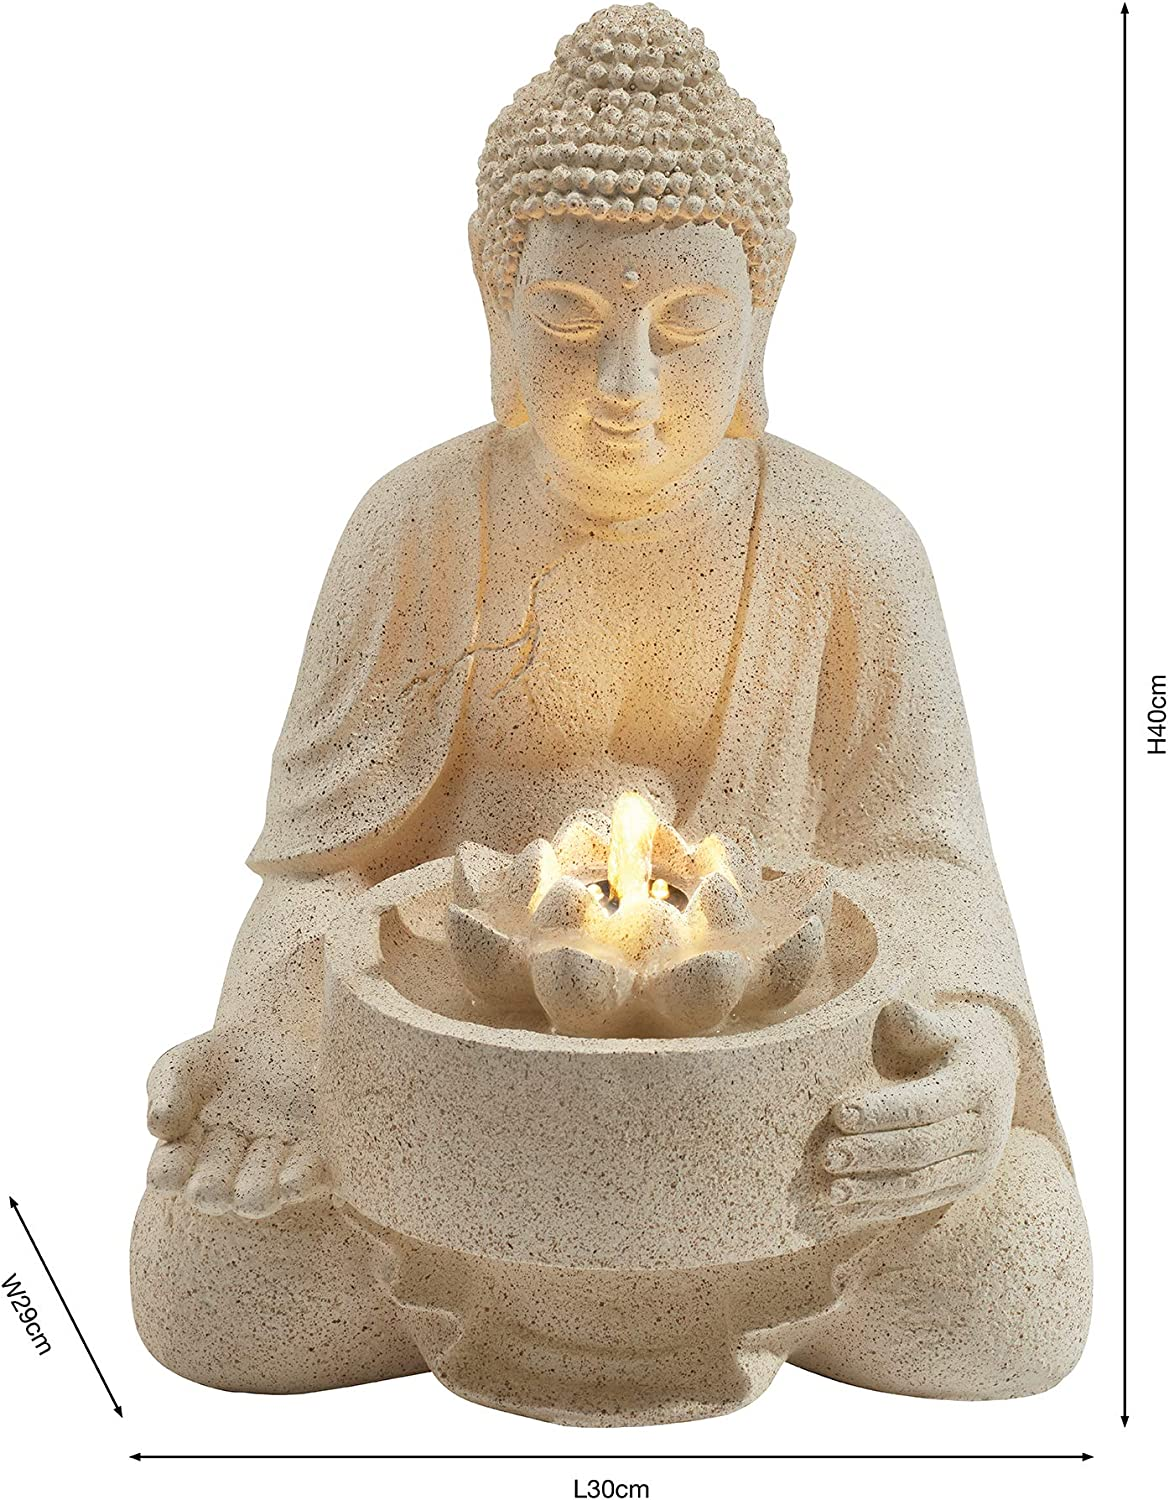 Serenity Serene Buddha Water Feature Light Up Led Lotus Fountain Weatherproof Self Contained Ornament For Garden Decking Patio Decoration Height 40cm Amazon Co Uk Garden Outdoors